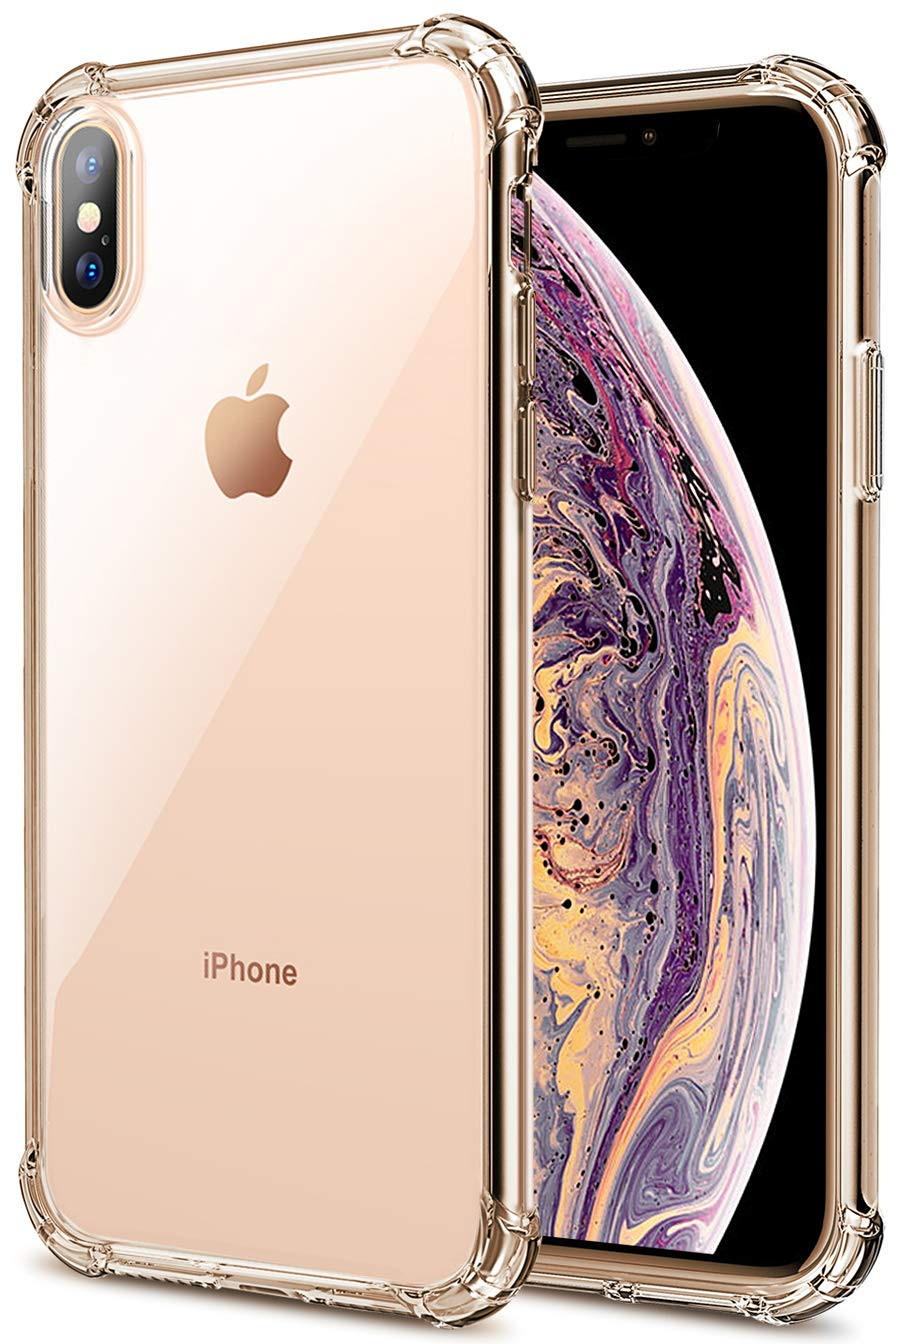 pretty nice 31cdc 824f6 Matone iPhone Xs Max Case, Crystal Clear Slim Protective Cover with  Reinforced Corner Bumpers, Fl...